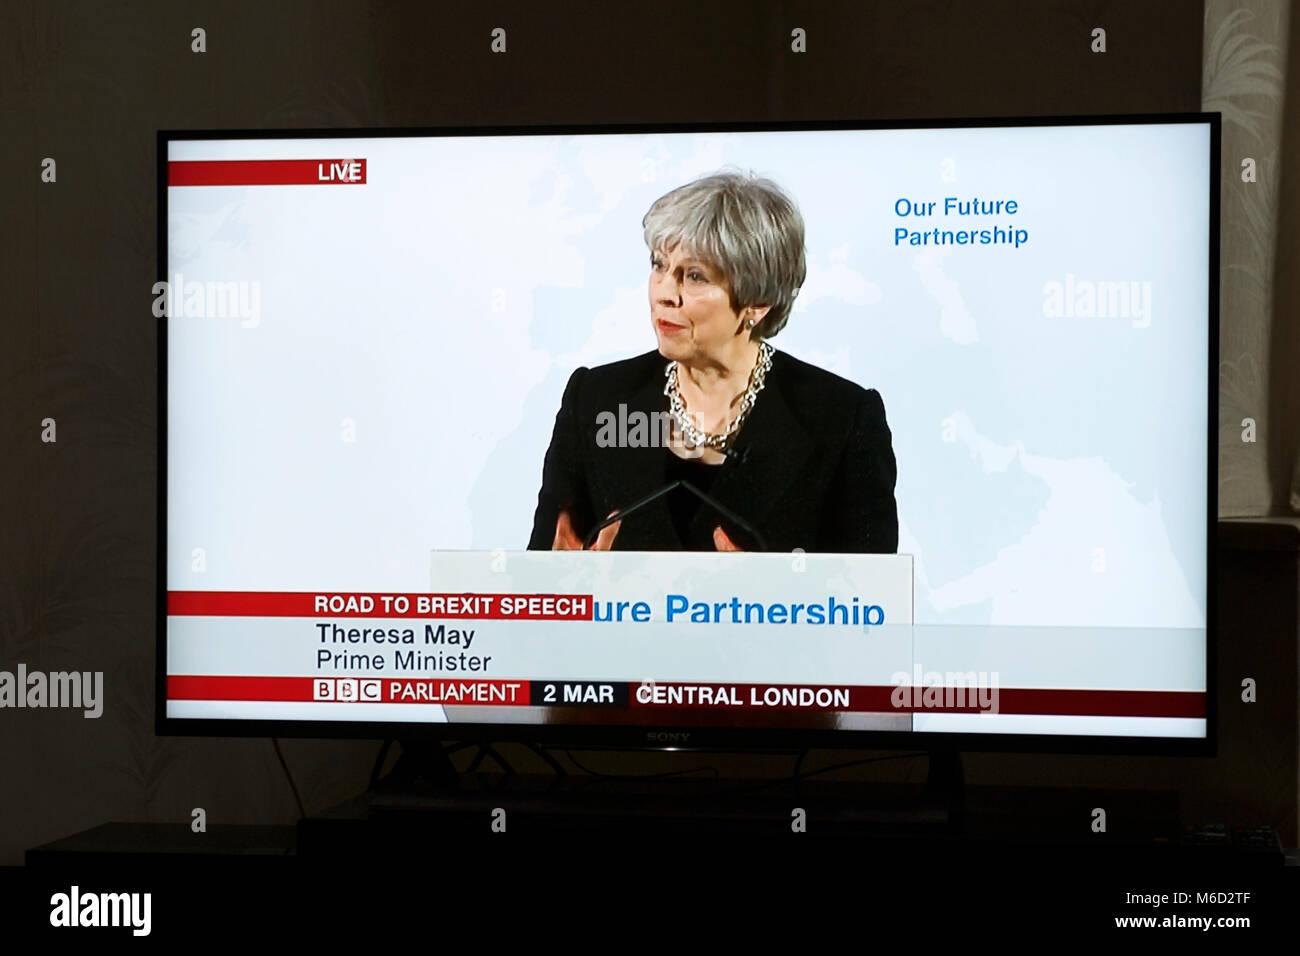 London, UK. 2nd March, 2018. The UK Prime Minister Theresa May giving her Road to Brexit Speech on BBC Parliament. - Stock Image